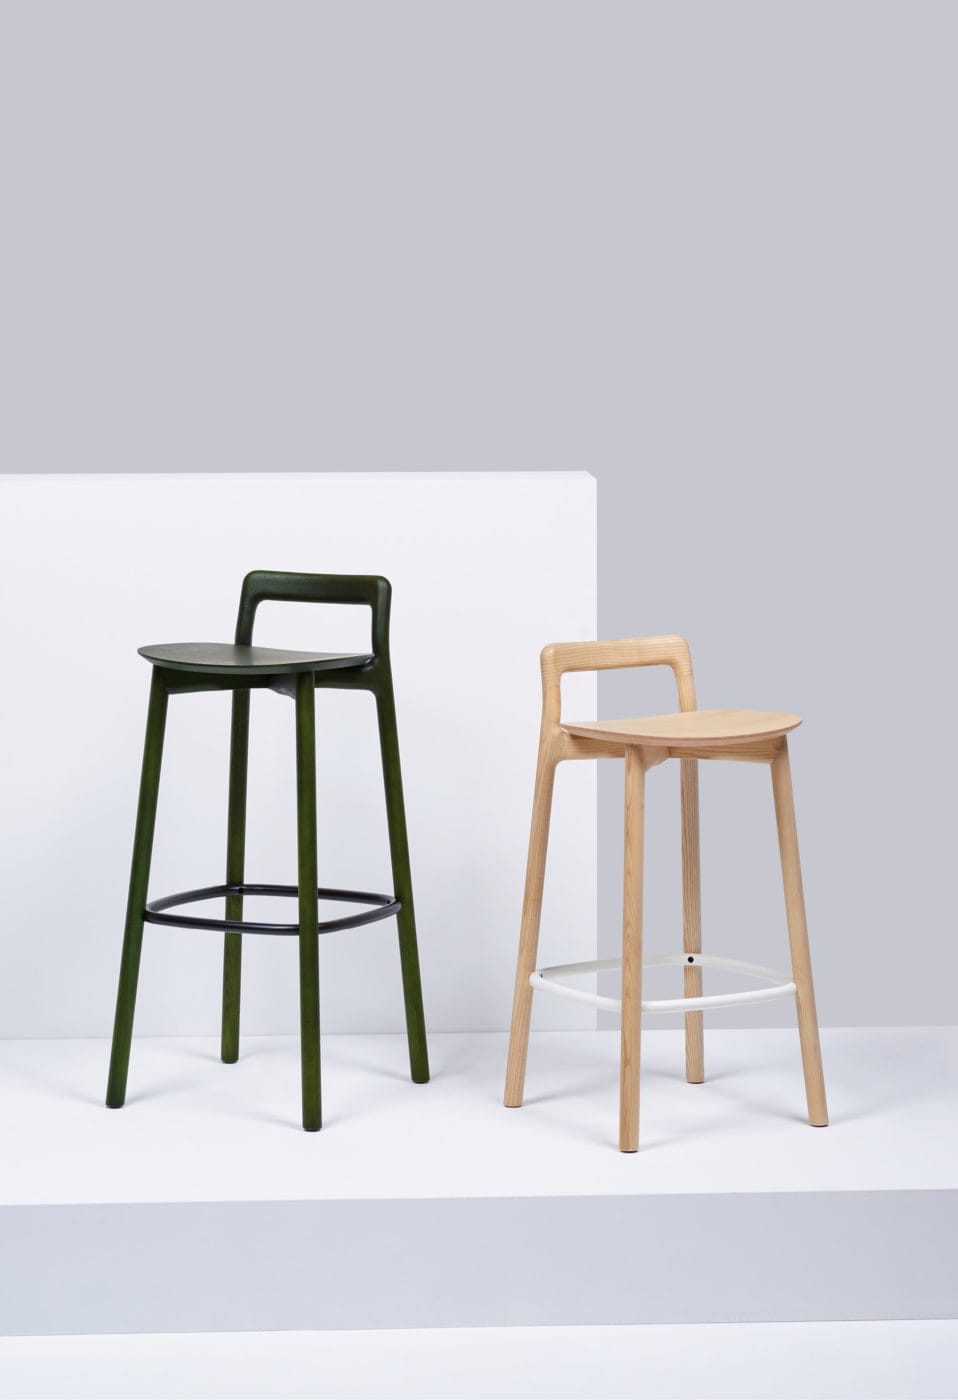 Mc2 Branca Stool By Sam Hecht Amp Kim Colin For Mattiazzi